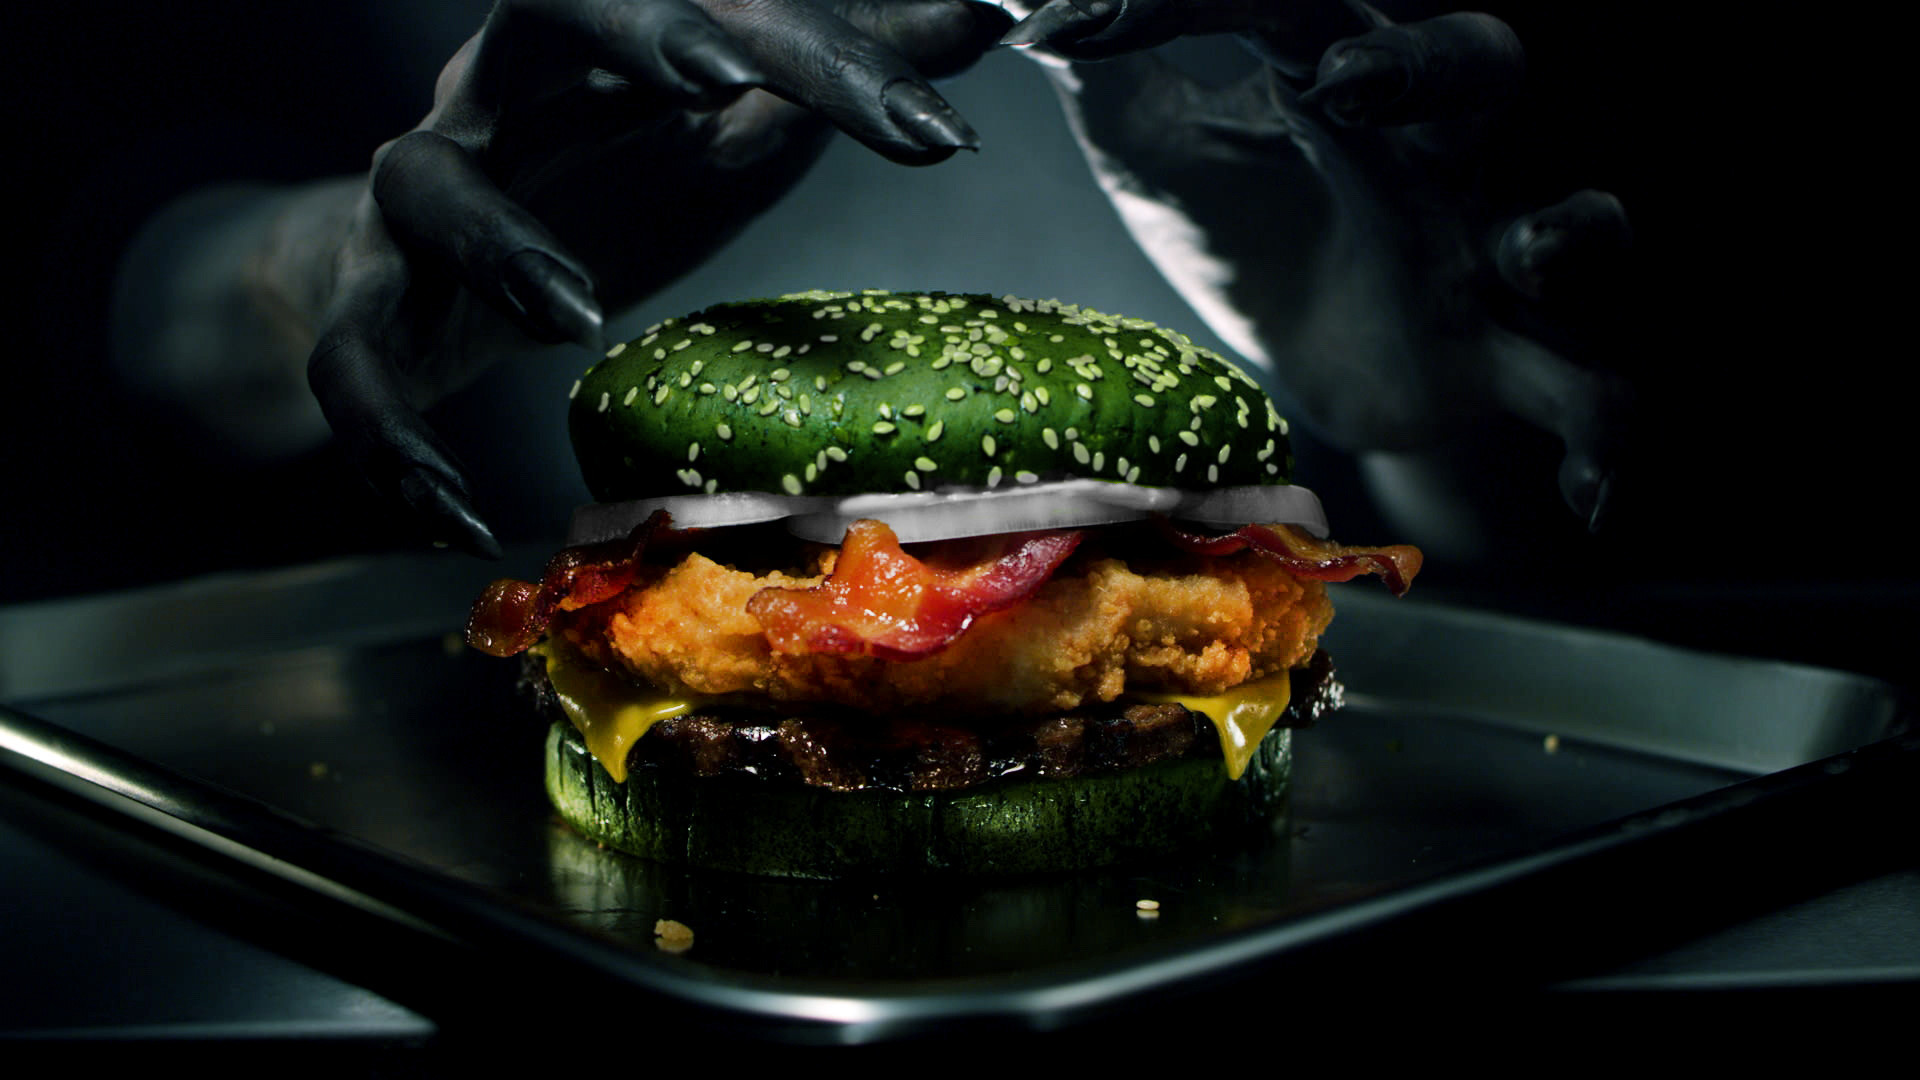 Burger Kings new green bun Halloween sandwich follows black bun special that turned poop green